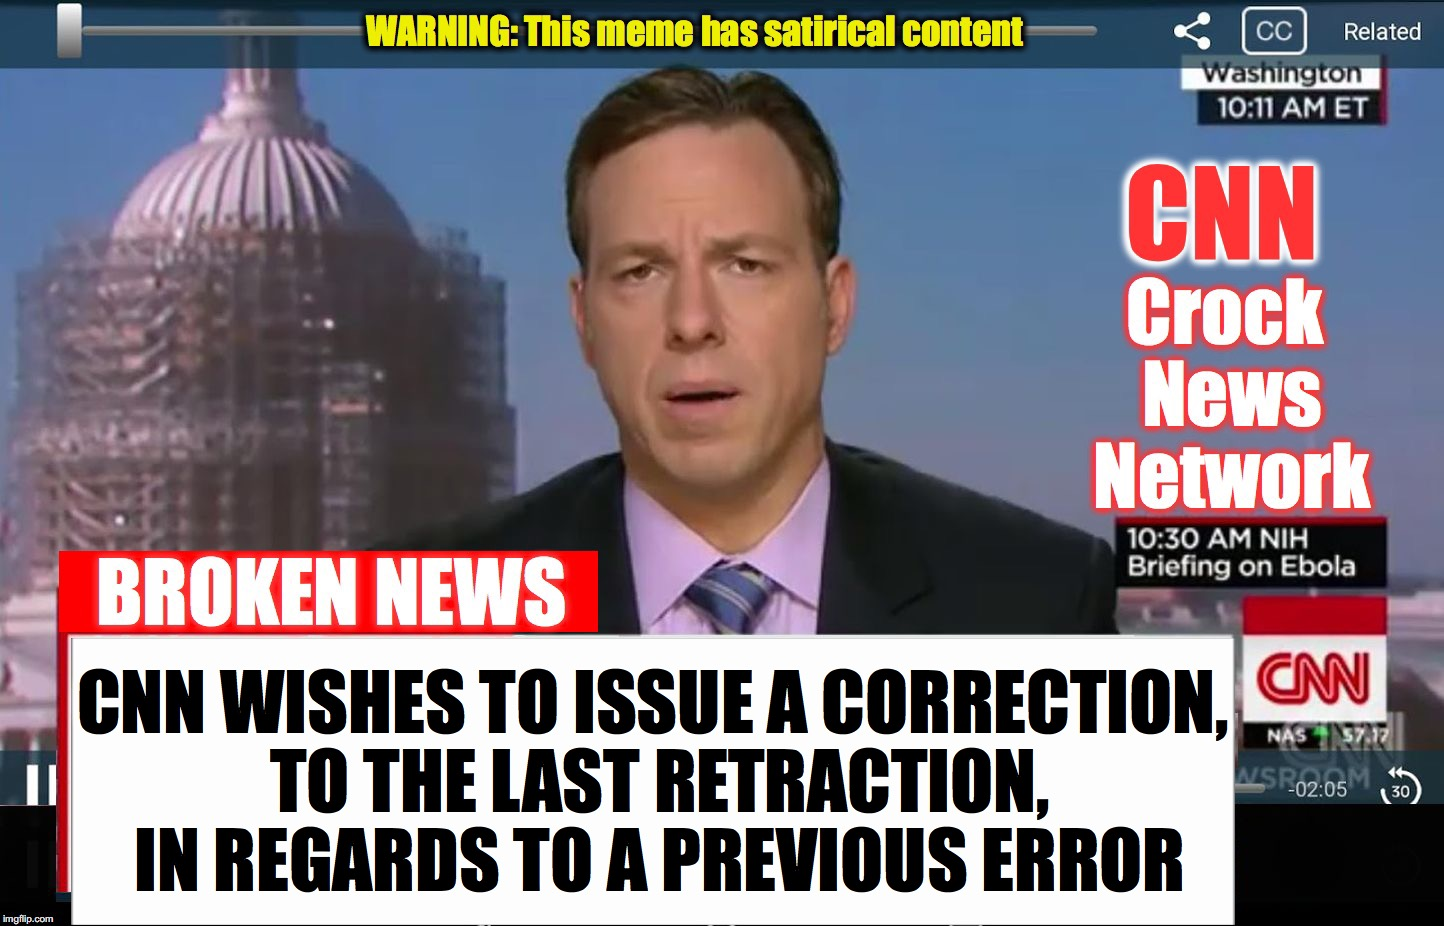 CNN Crock News Network | CNN WISHES TO ISSUE A CORRECTION, TO THE LAST RETRACTION, IN REGARDS TO A PREVIOUS ERROR | image tagged in cnn crock news network | made w/ Imgflip meme maker